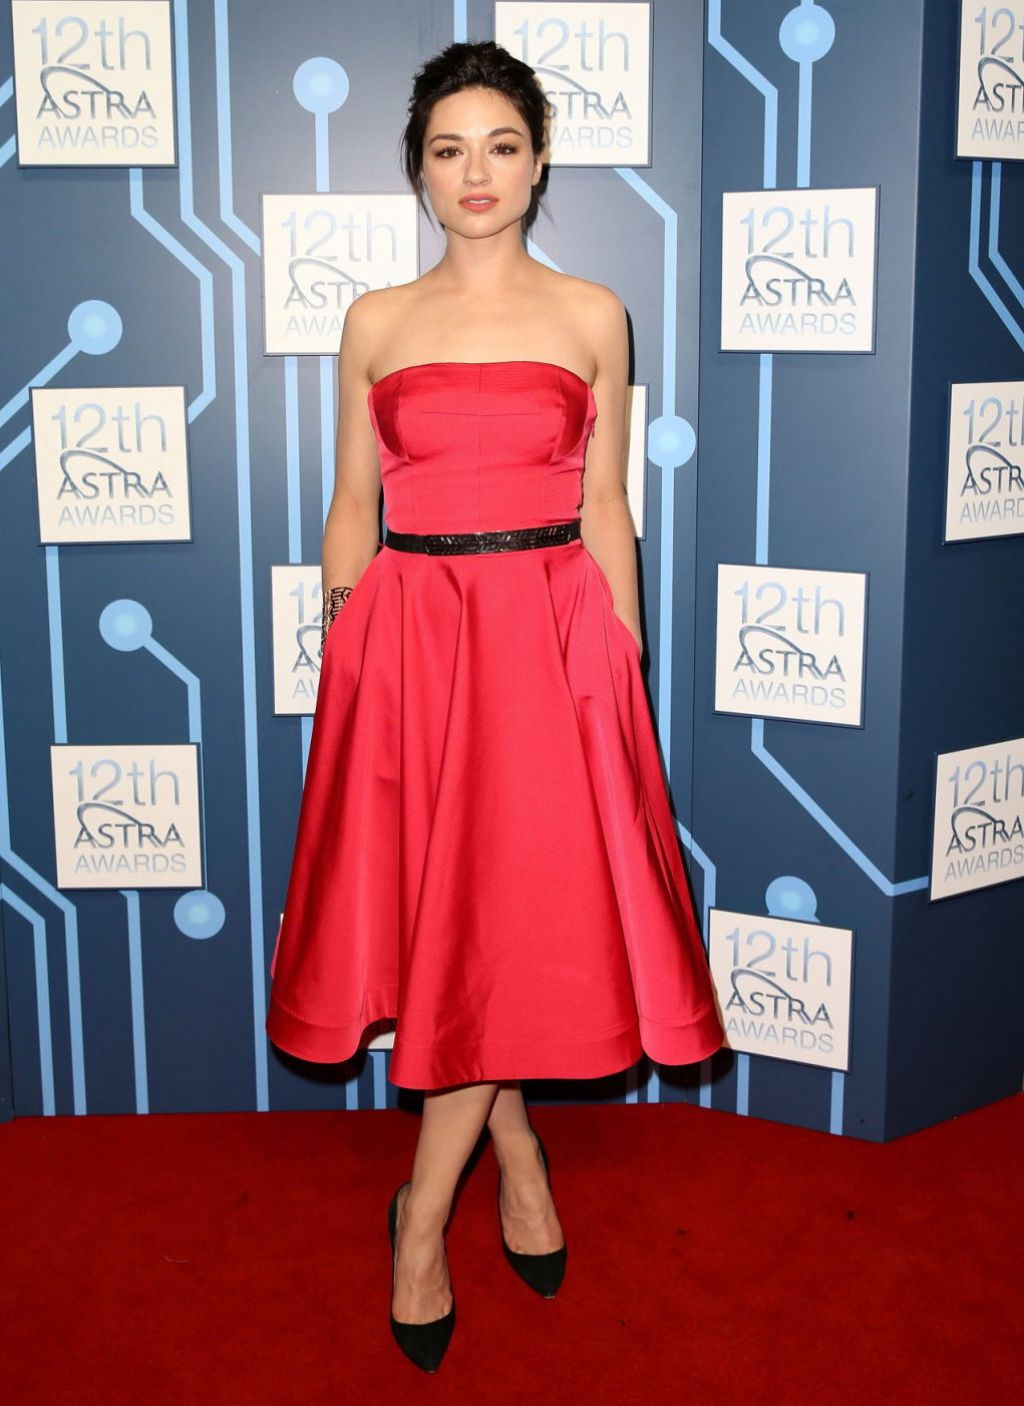 Crystal Reed In Escada Dress at 2014 ASTRA Awards in Sydney